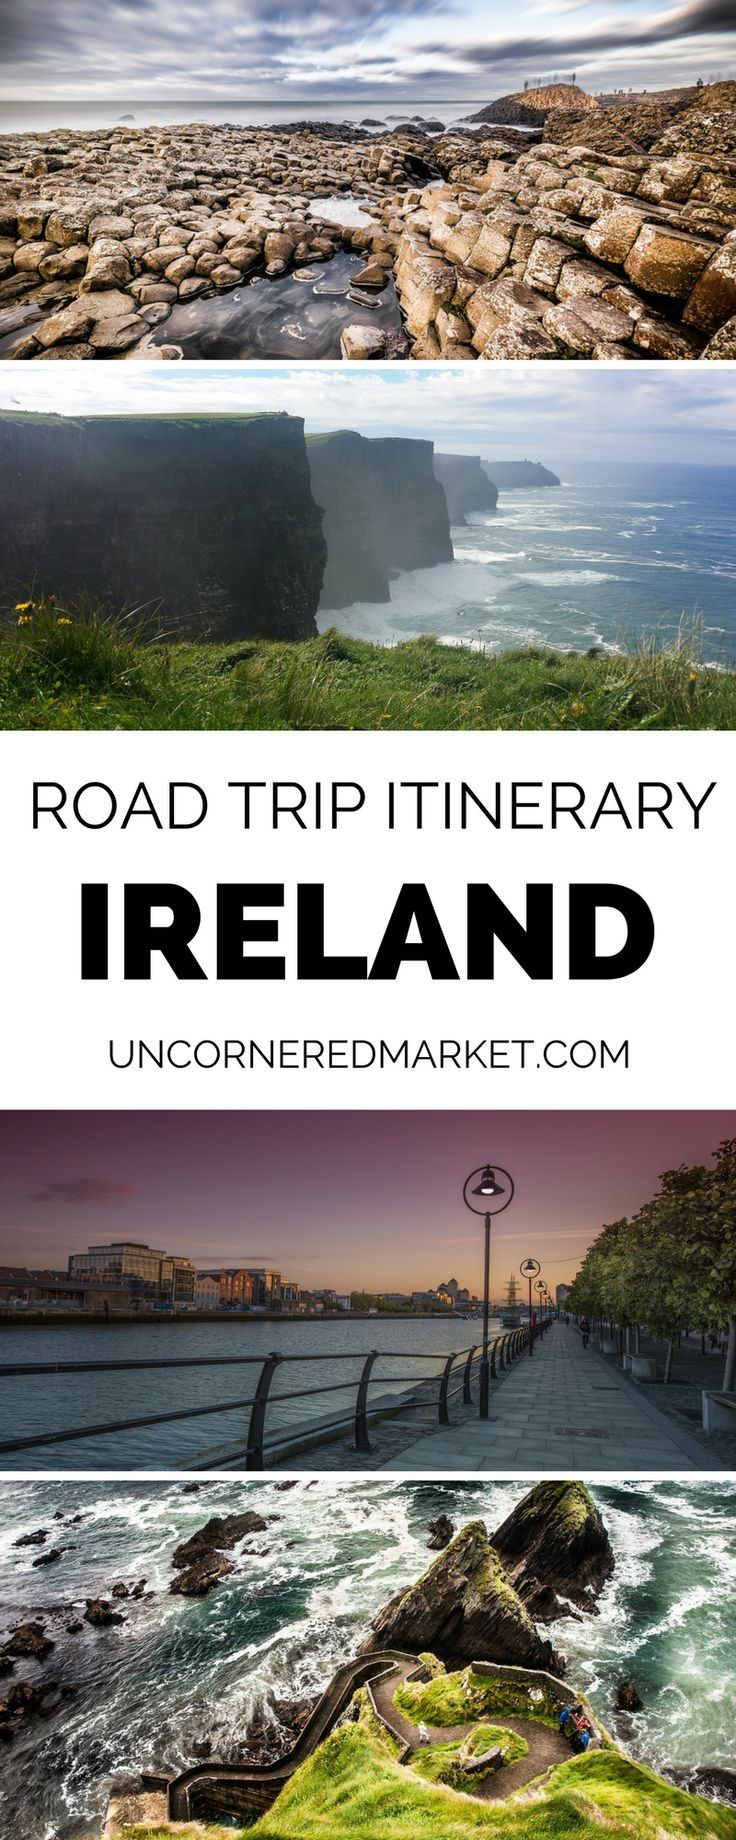 The ultimate road trip guide to Ireland. A day-by-day itinerary with recommendations on best things to do and see, where to stay, and what to eat along the way. | Uncornered Market Travel Blog: Travel Wide, Live Deep